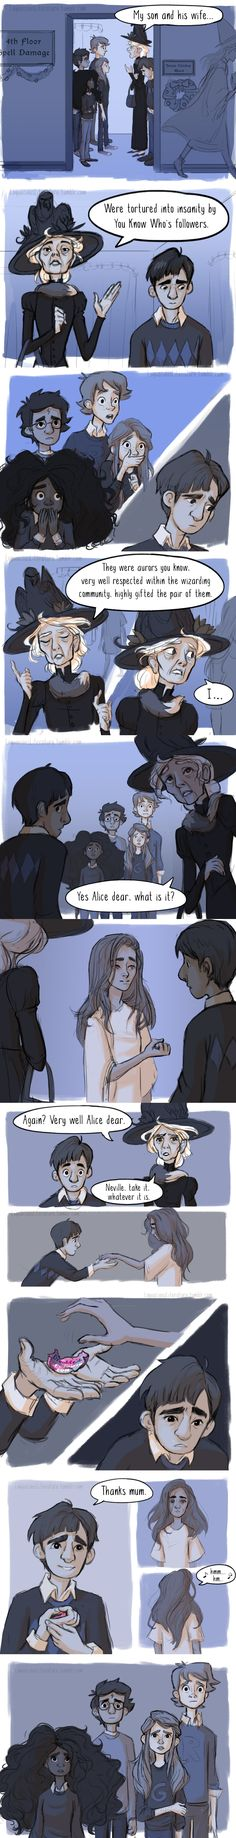 Harry Potter Book 5 Scene